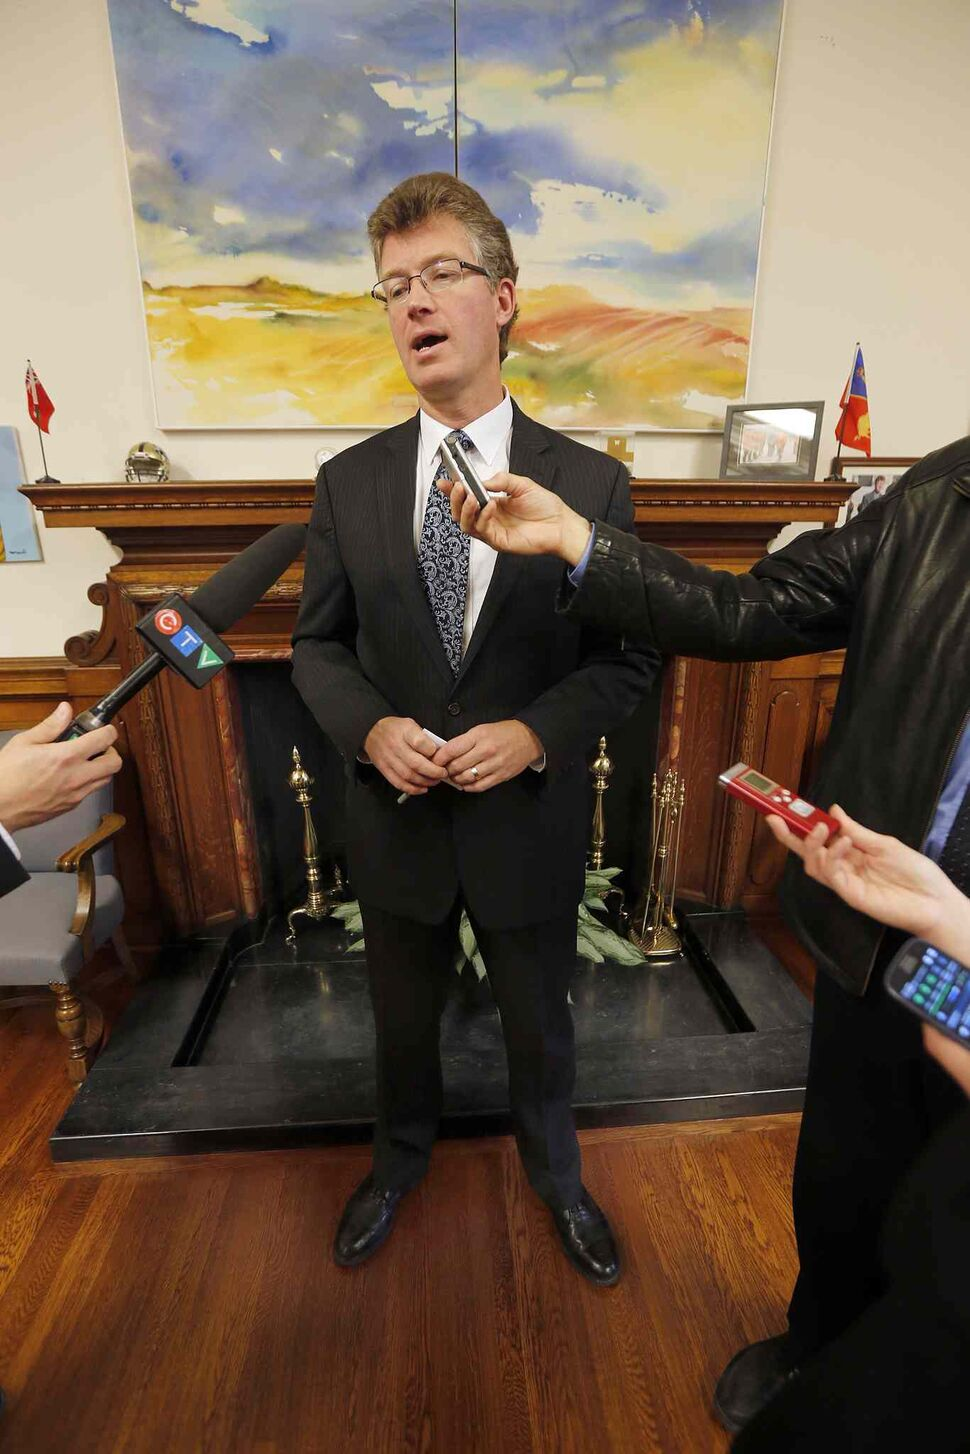 Justice Minister Andrew Swan invited the media into his legislature office to hold a scrum n which he said Greg Selinger has to quit as NDP leader because of poor poll numbers. Swan ran against Selinger in a leadership contest five years ago. He had to pull out because of his poor showing. He entrenched himself in the Selinger camp at that time.